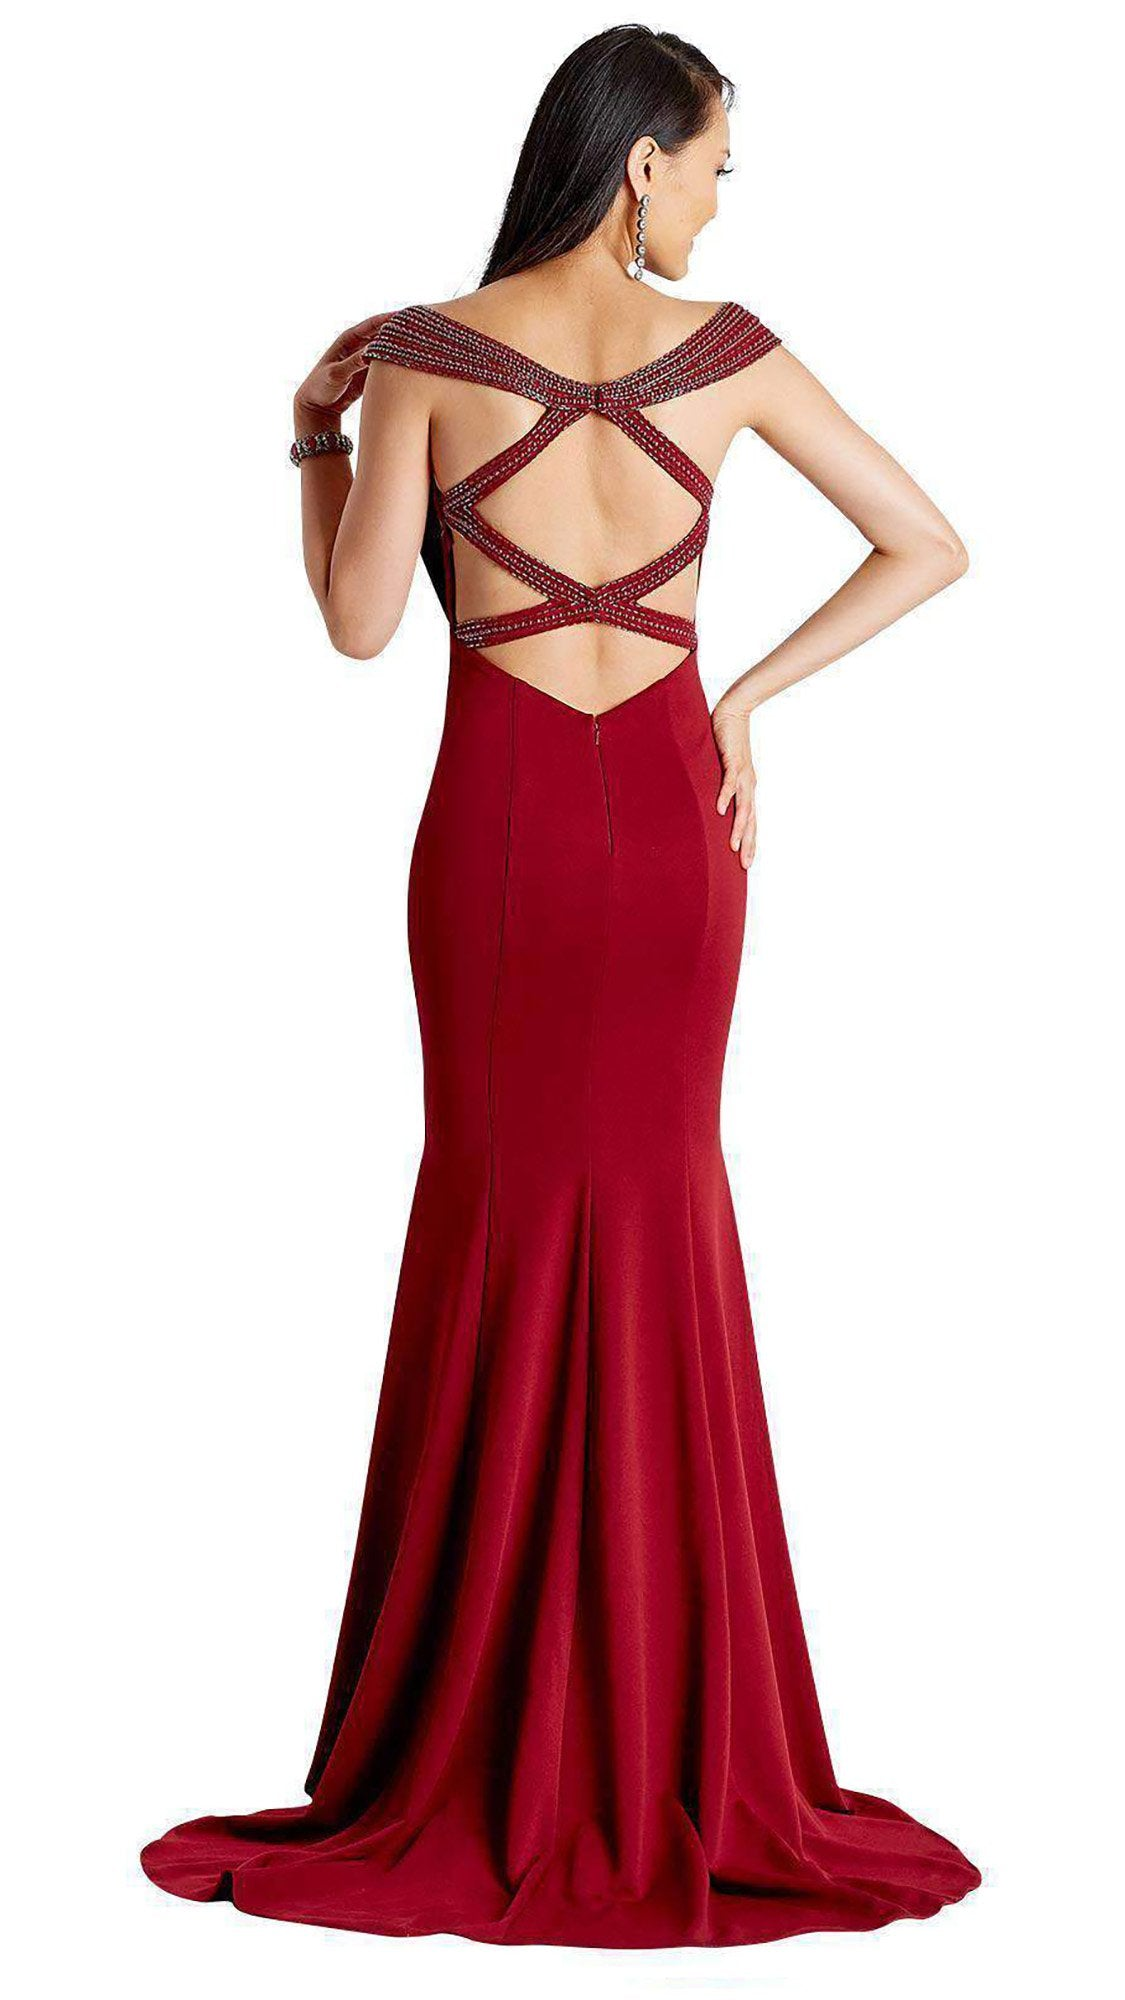 Clarisse - Beaded Crisscross Strapped Trumpet Dress 3432SC